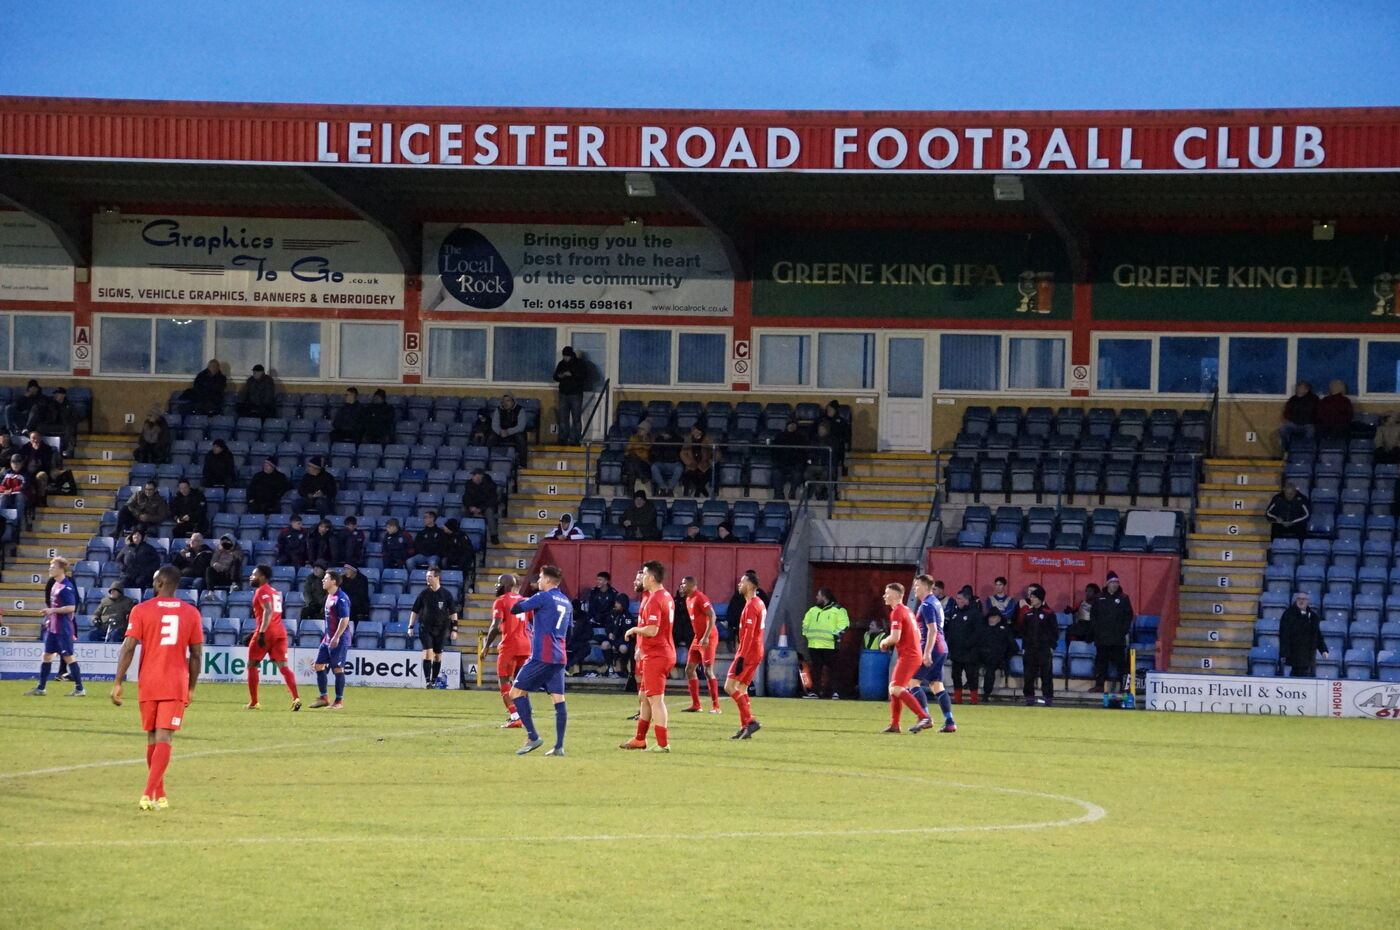 Leicester Road Football Club photo